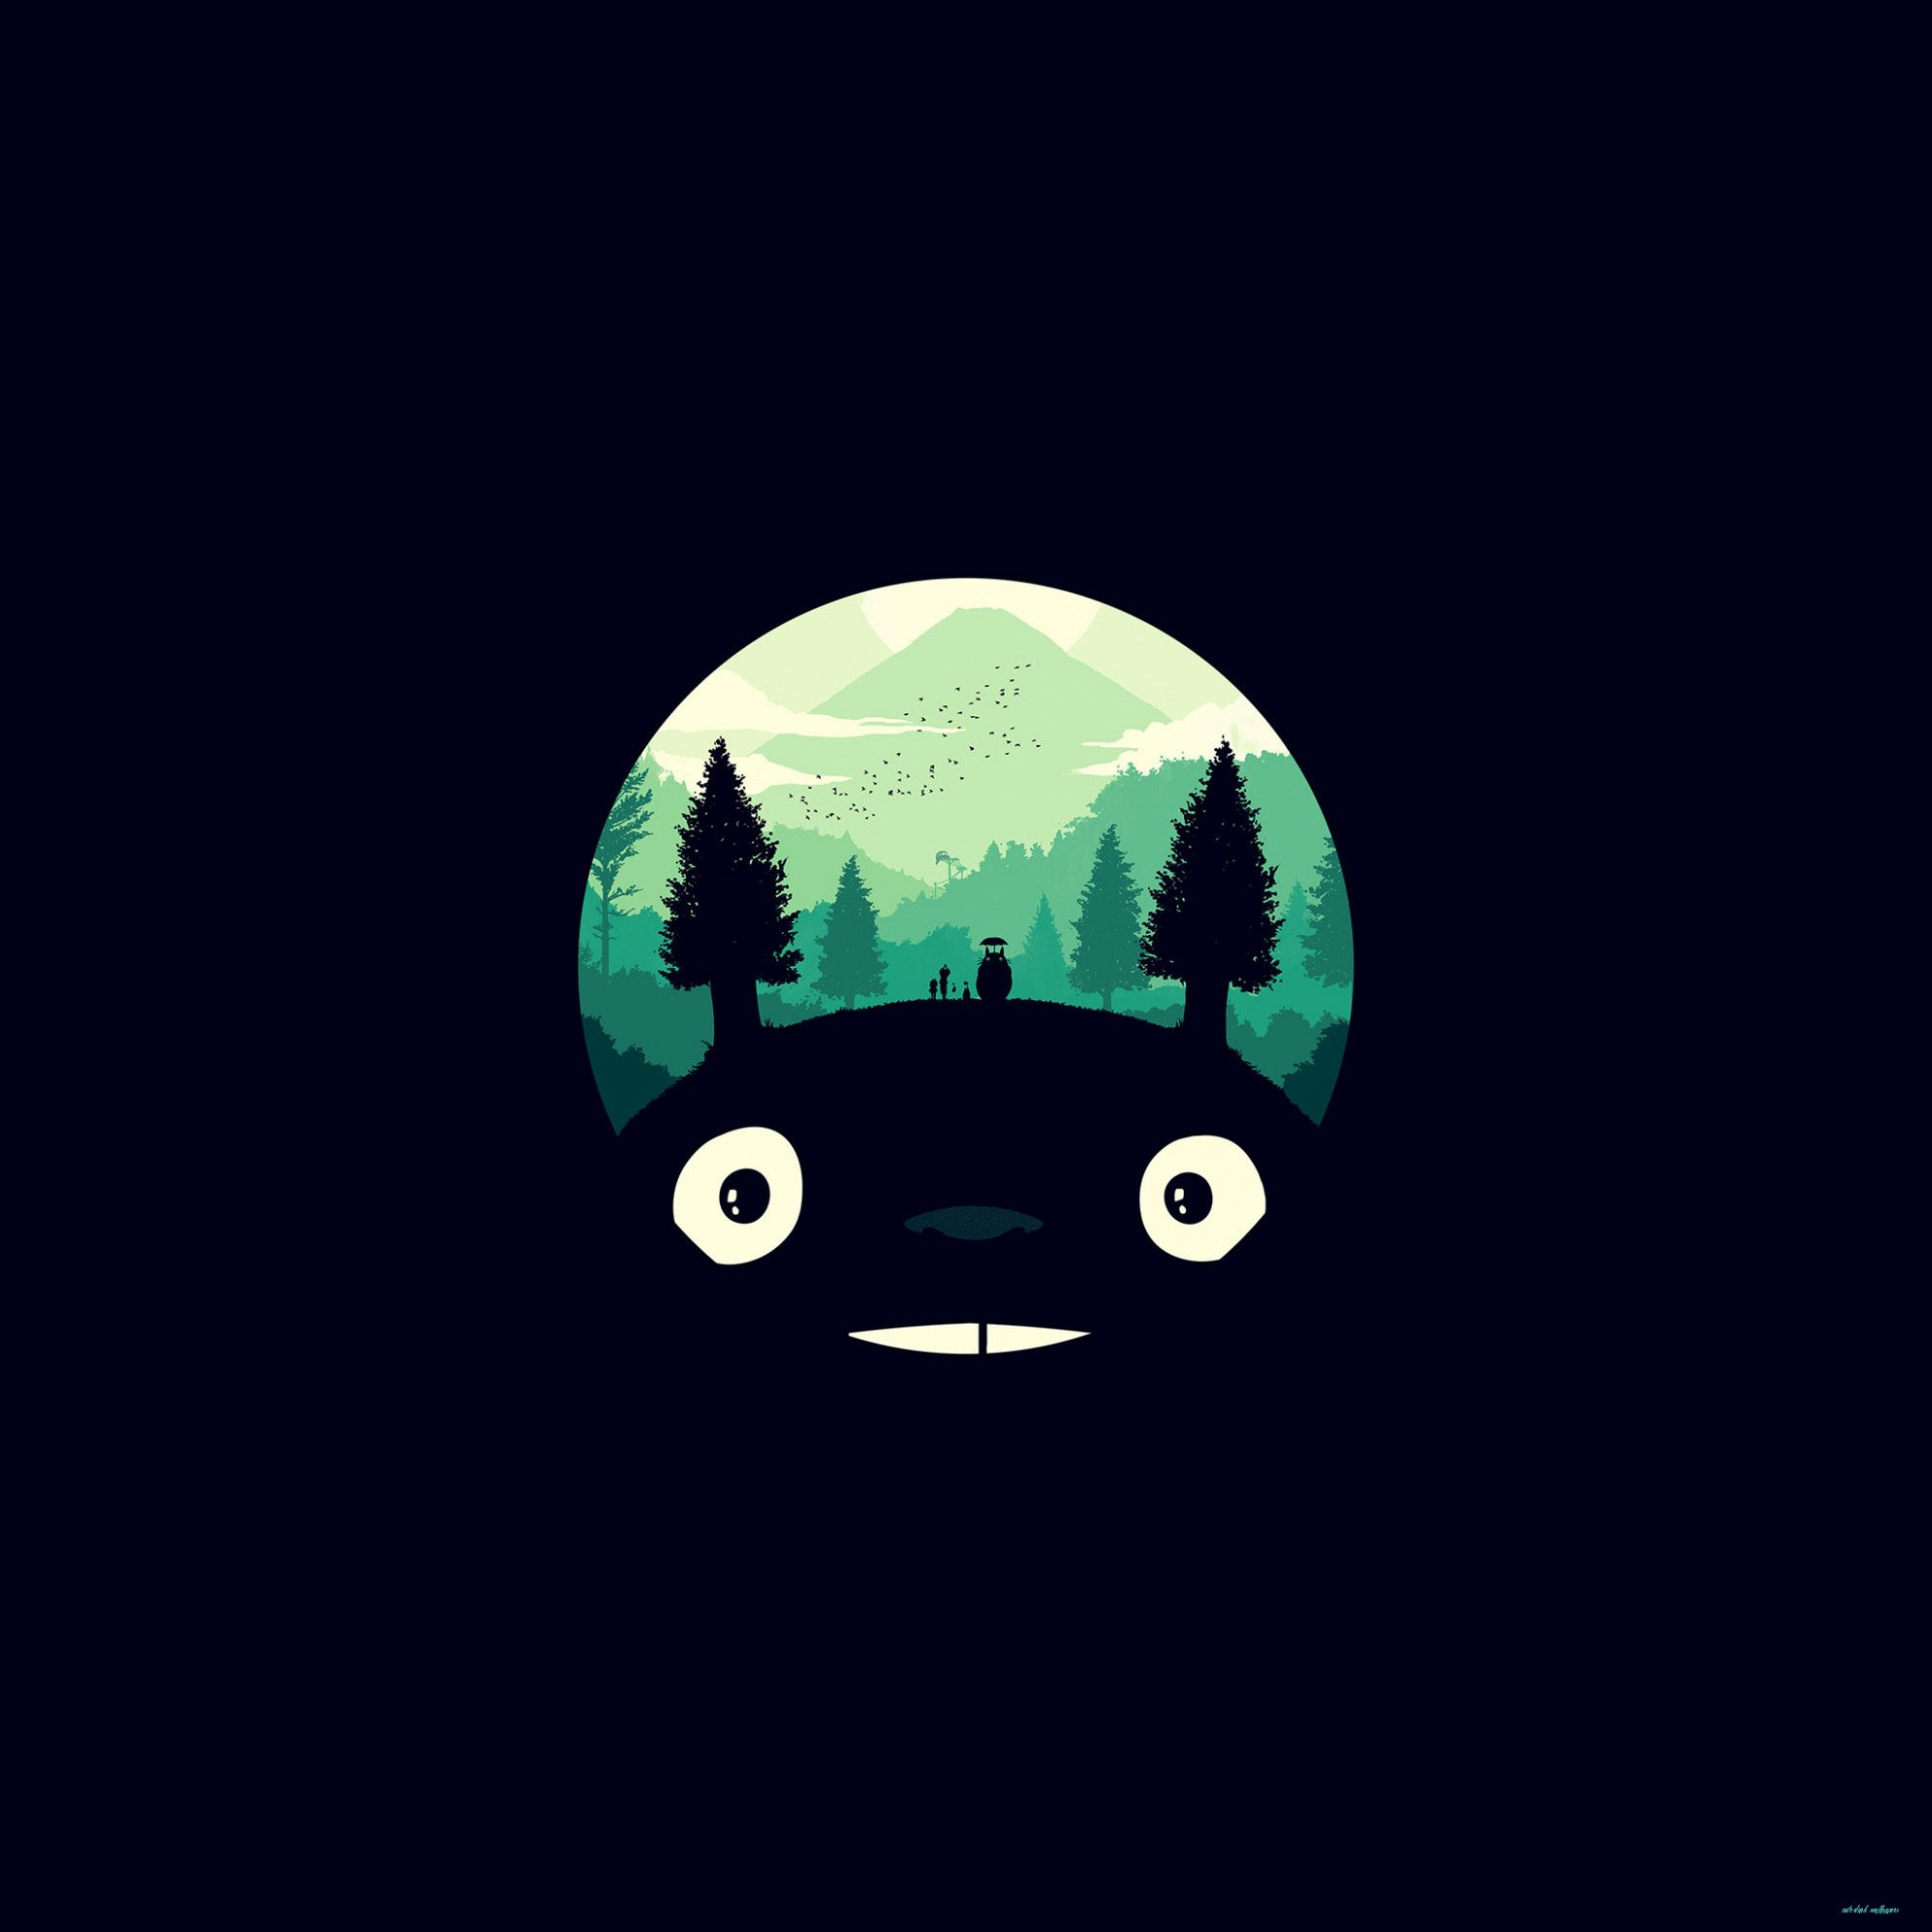 How To Have A Fantastic Cute Dark Wallpapers With Minimal Spending Cute Dark Wallpapers Cute Desktop Wallpaper Totoro Art Desktop Wallpaper Art Cute wallpapers kawaii for laptop